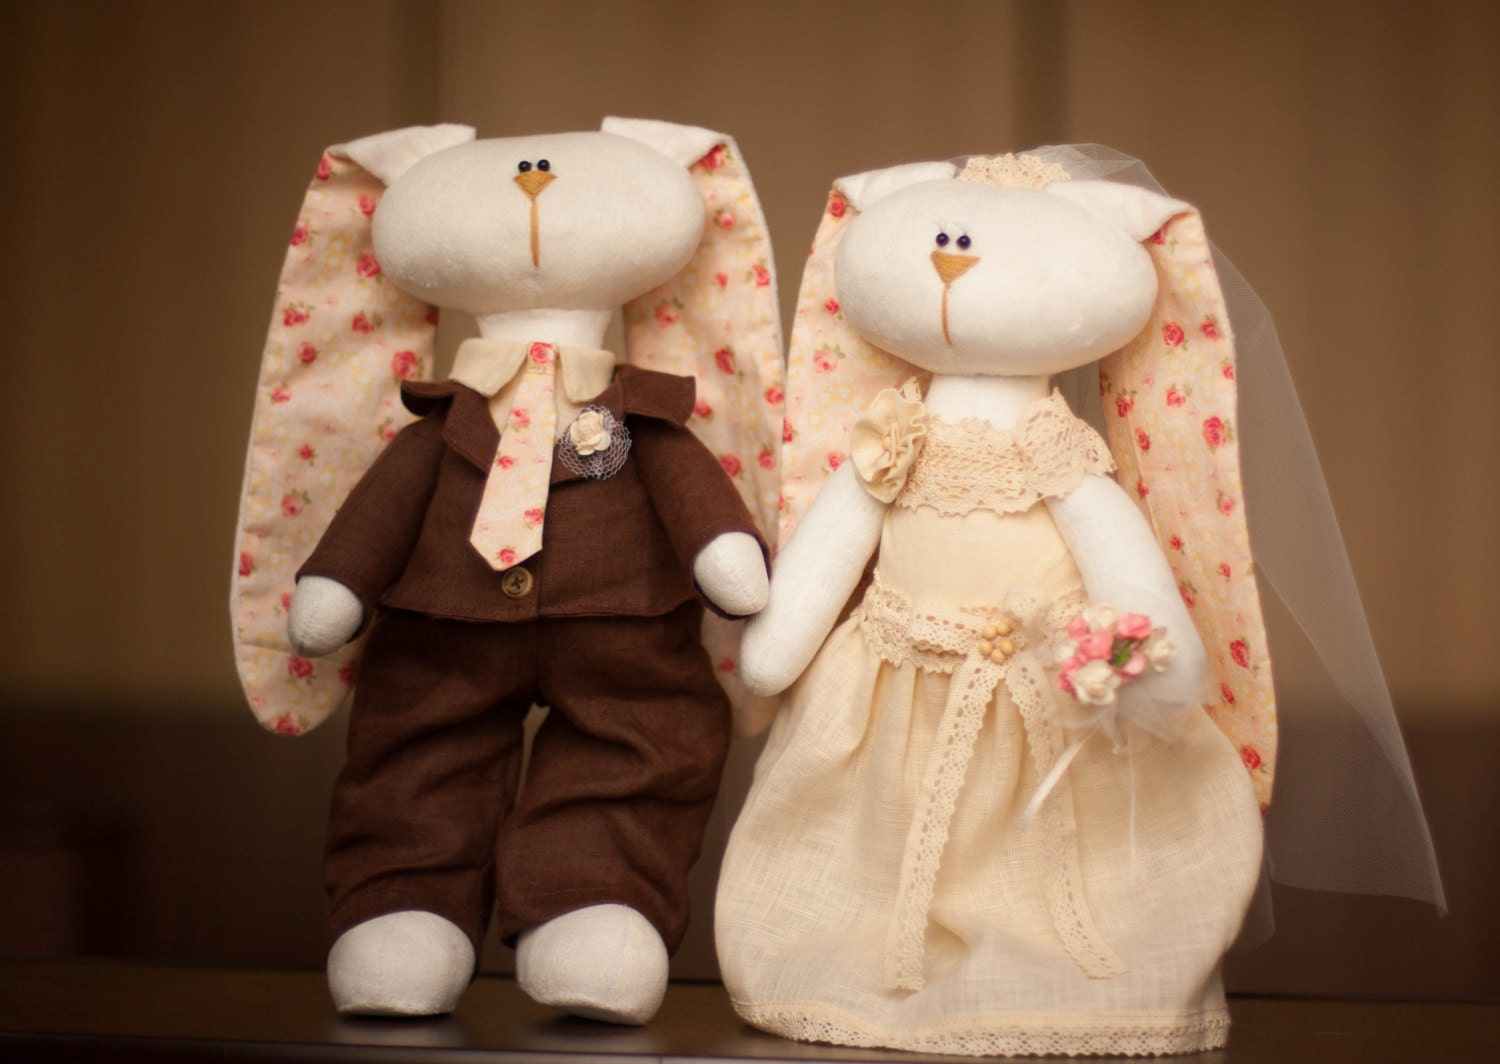 Handmade Wedding Gifts For Bride And Groom: Bride And Groom Custom Wedding Gift Wedding Dolls Bunny